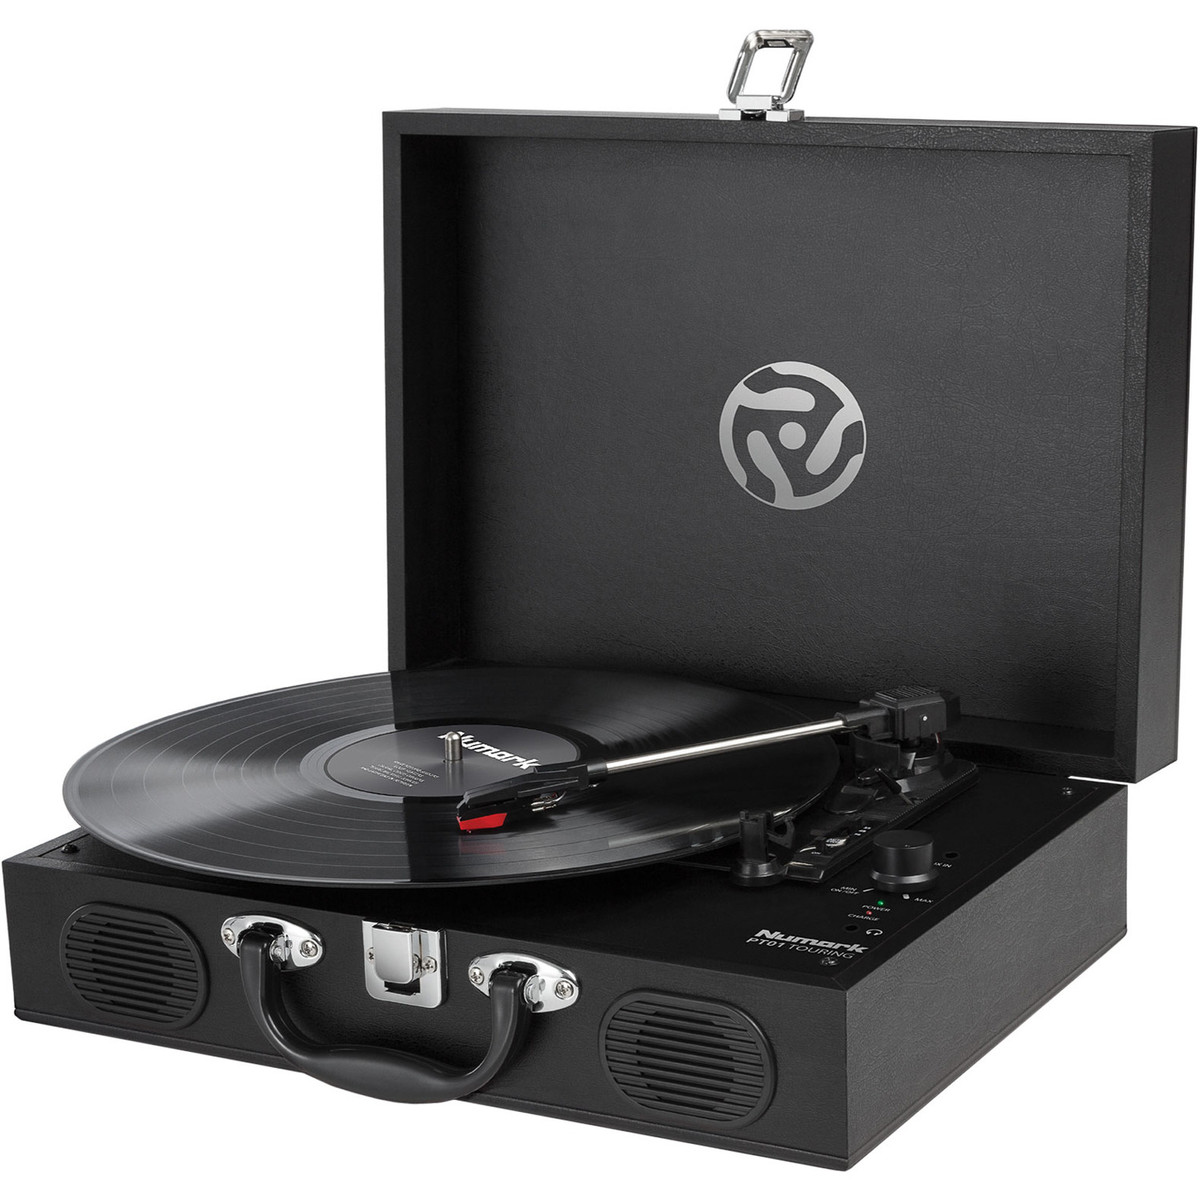 Numark Pt01 Touring Turntable